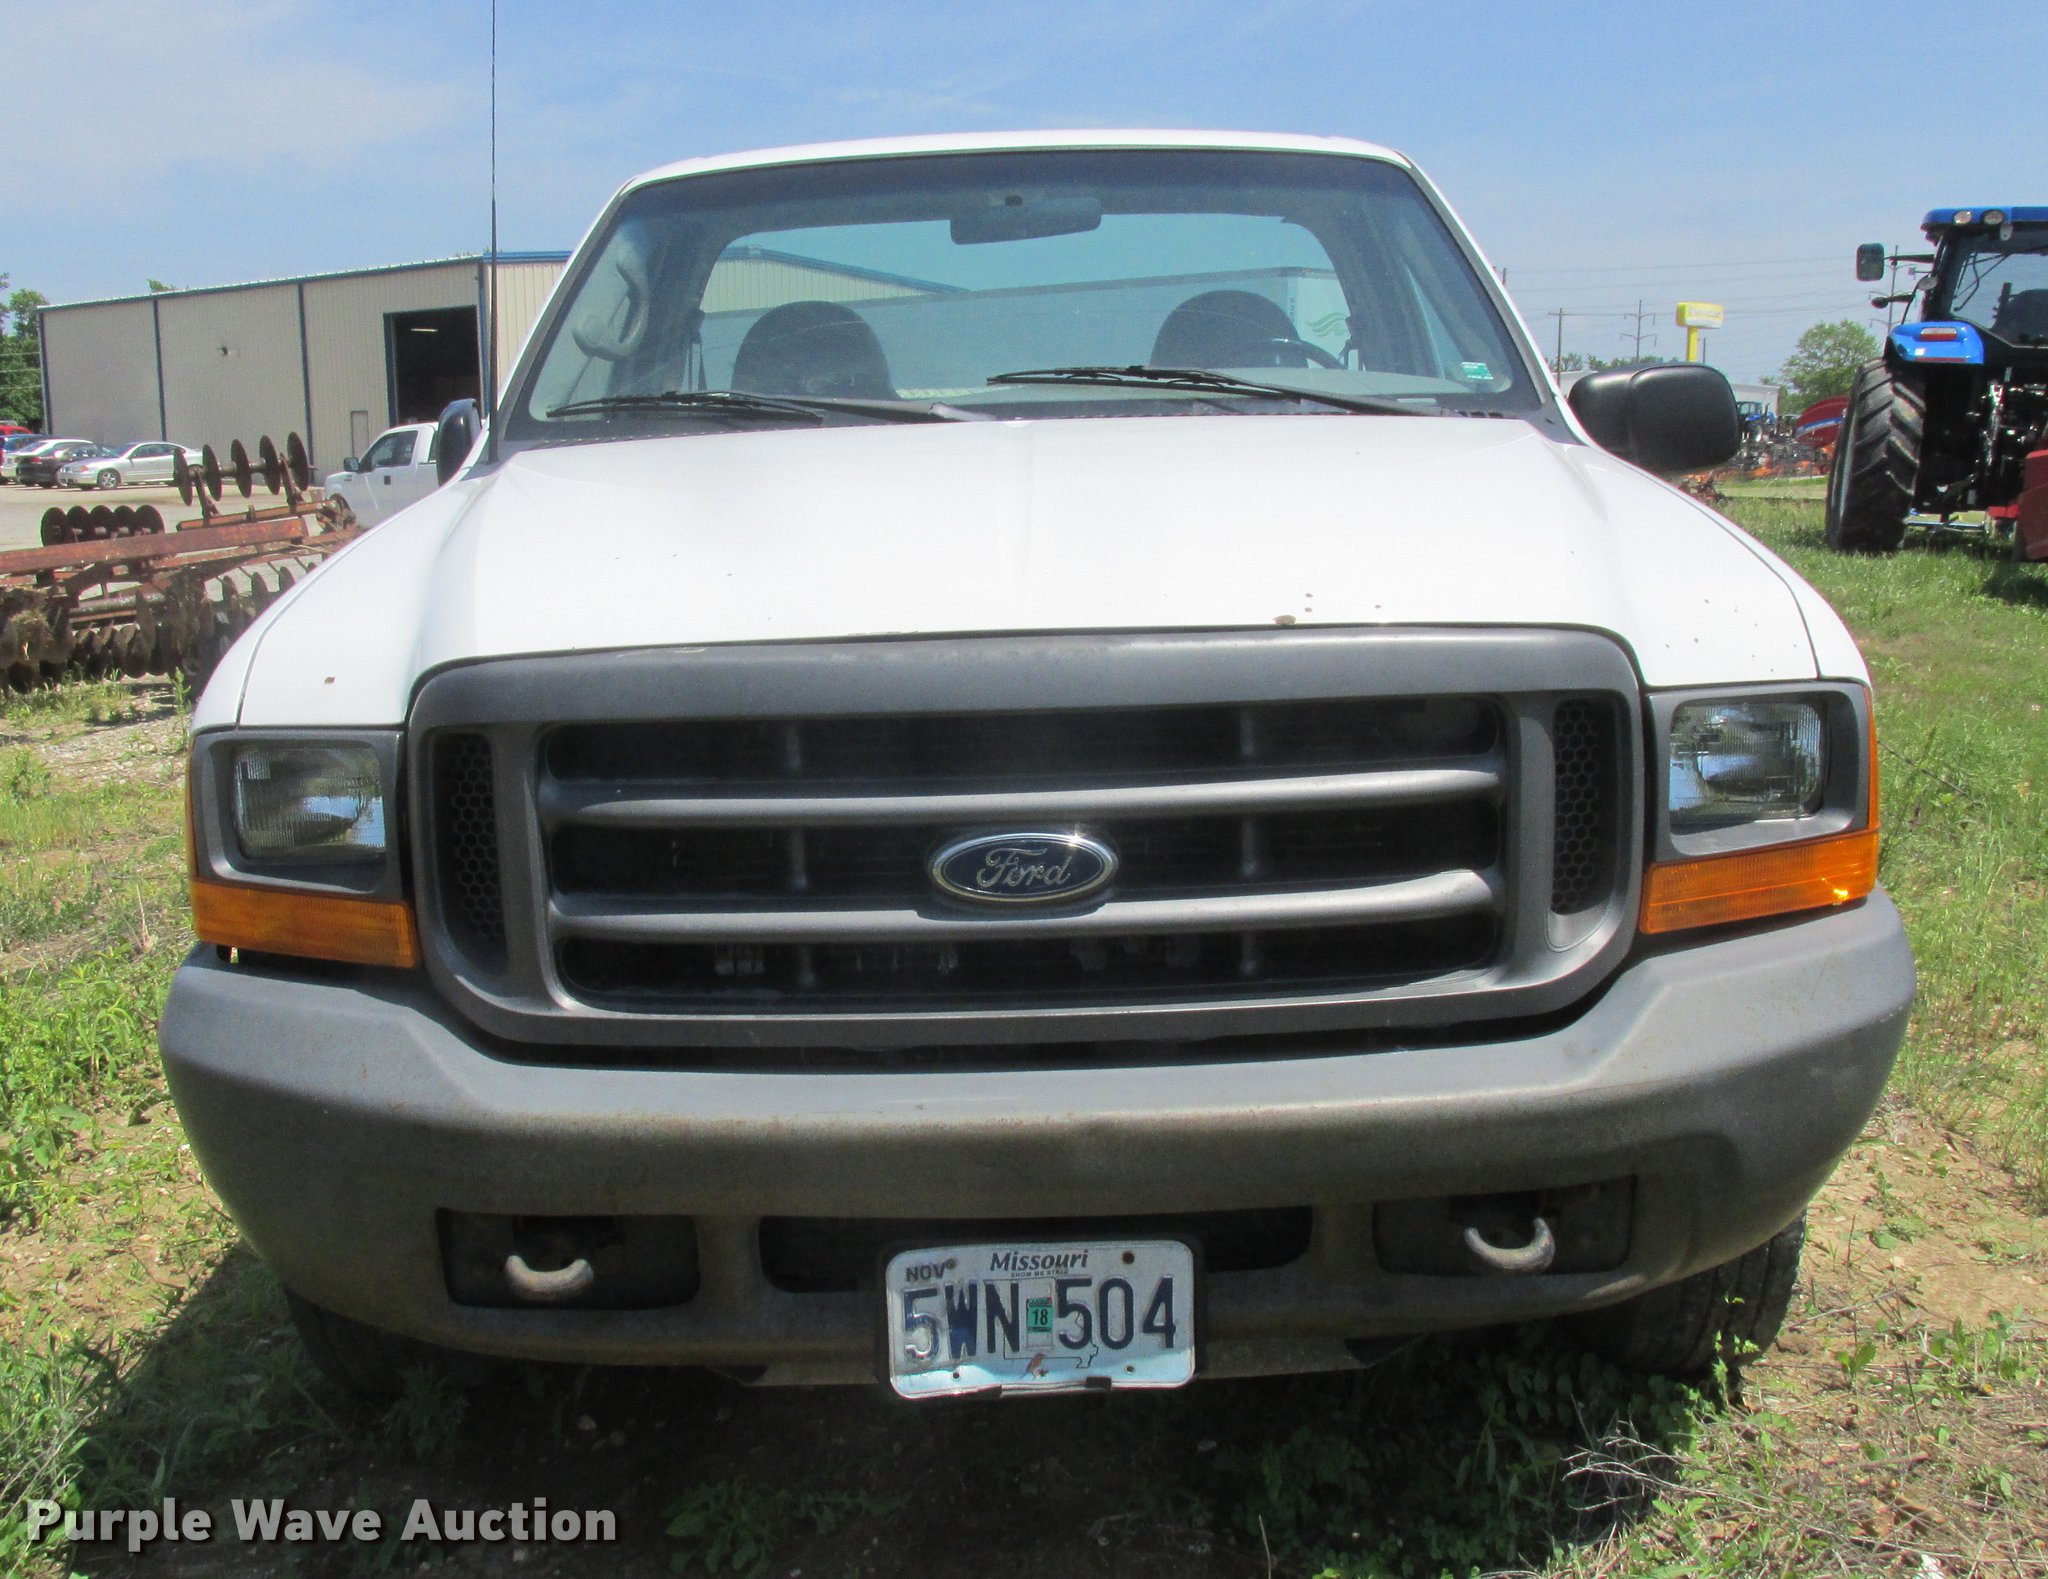 2000 Ford F250 Super Duty Pickup Truck Item Dd8468 Sold Full Size In New Window